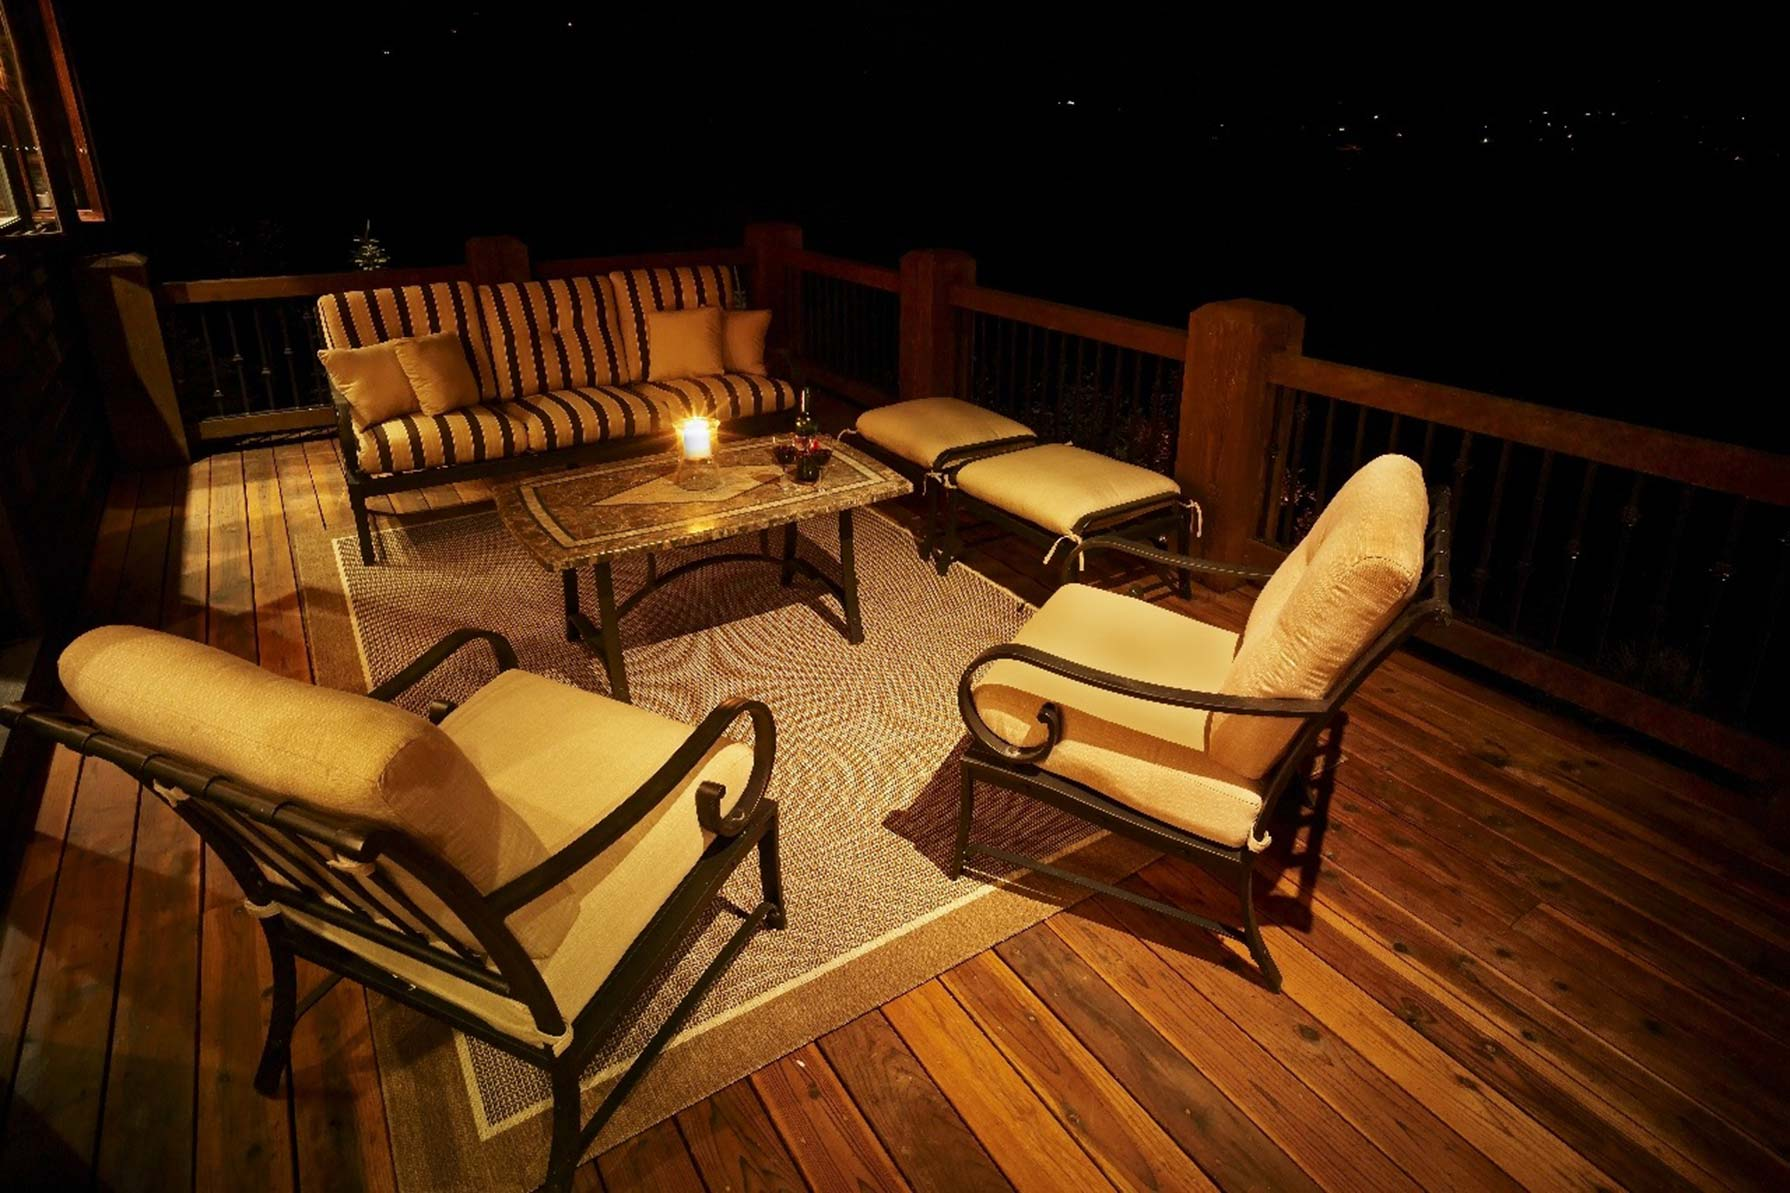 Check Out our Gallery & Landscape Lighting Services | Salt Lake City Park City Utah